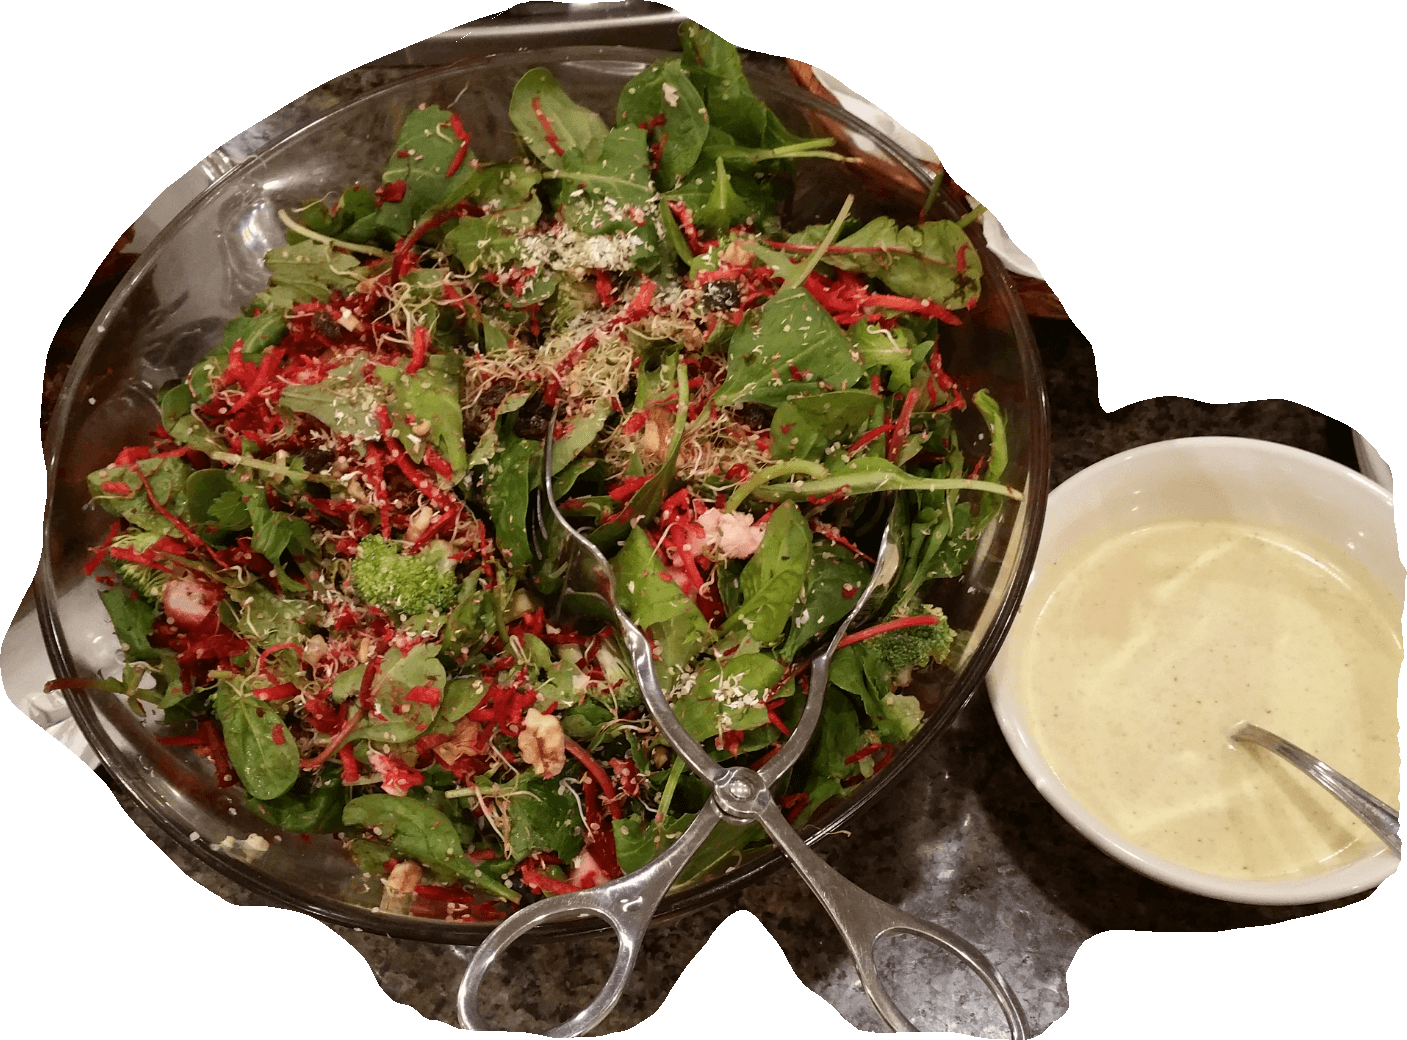 Salad Loaded With Nutrition